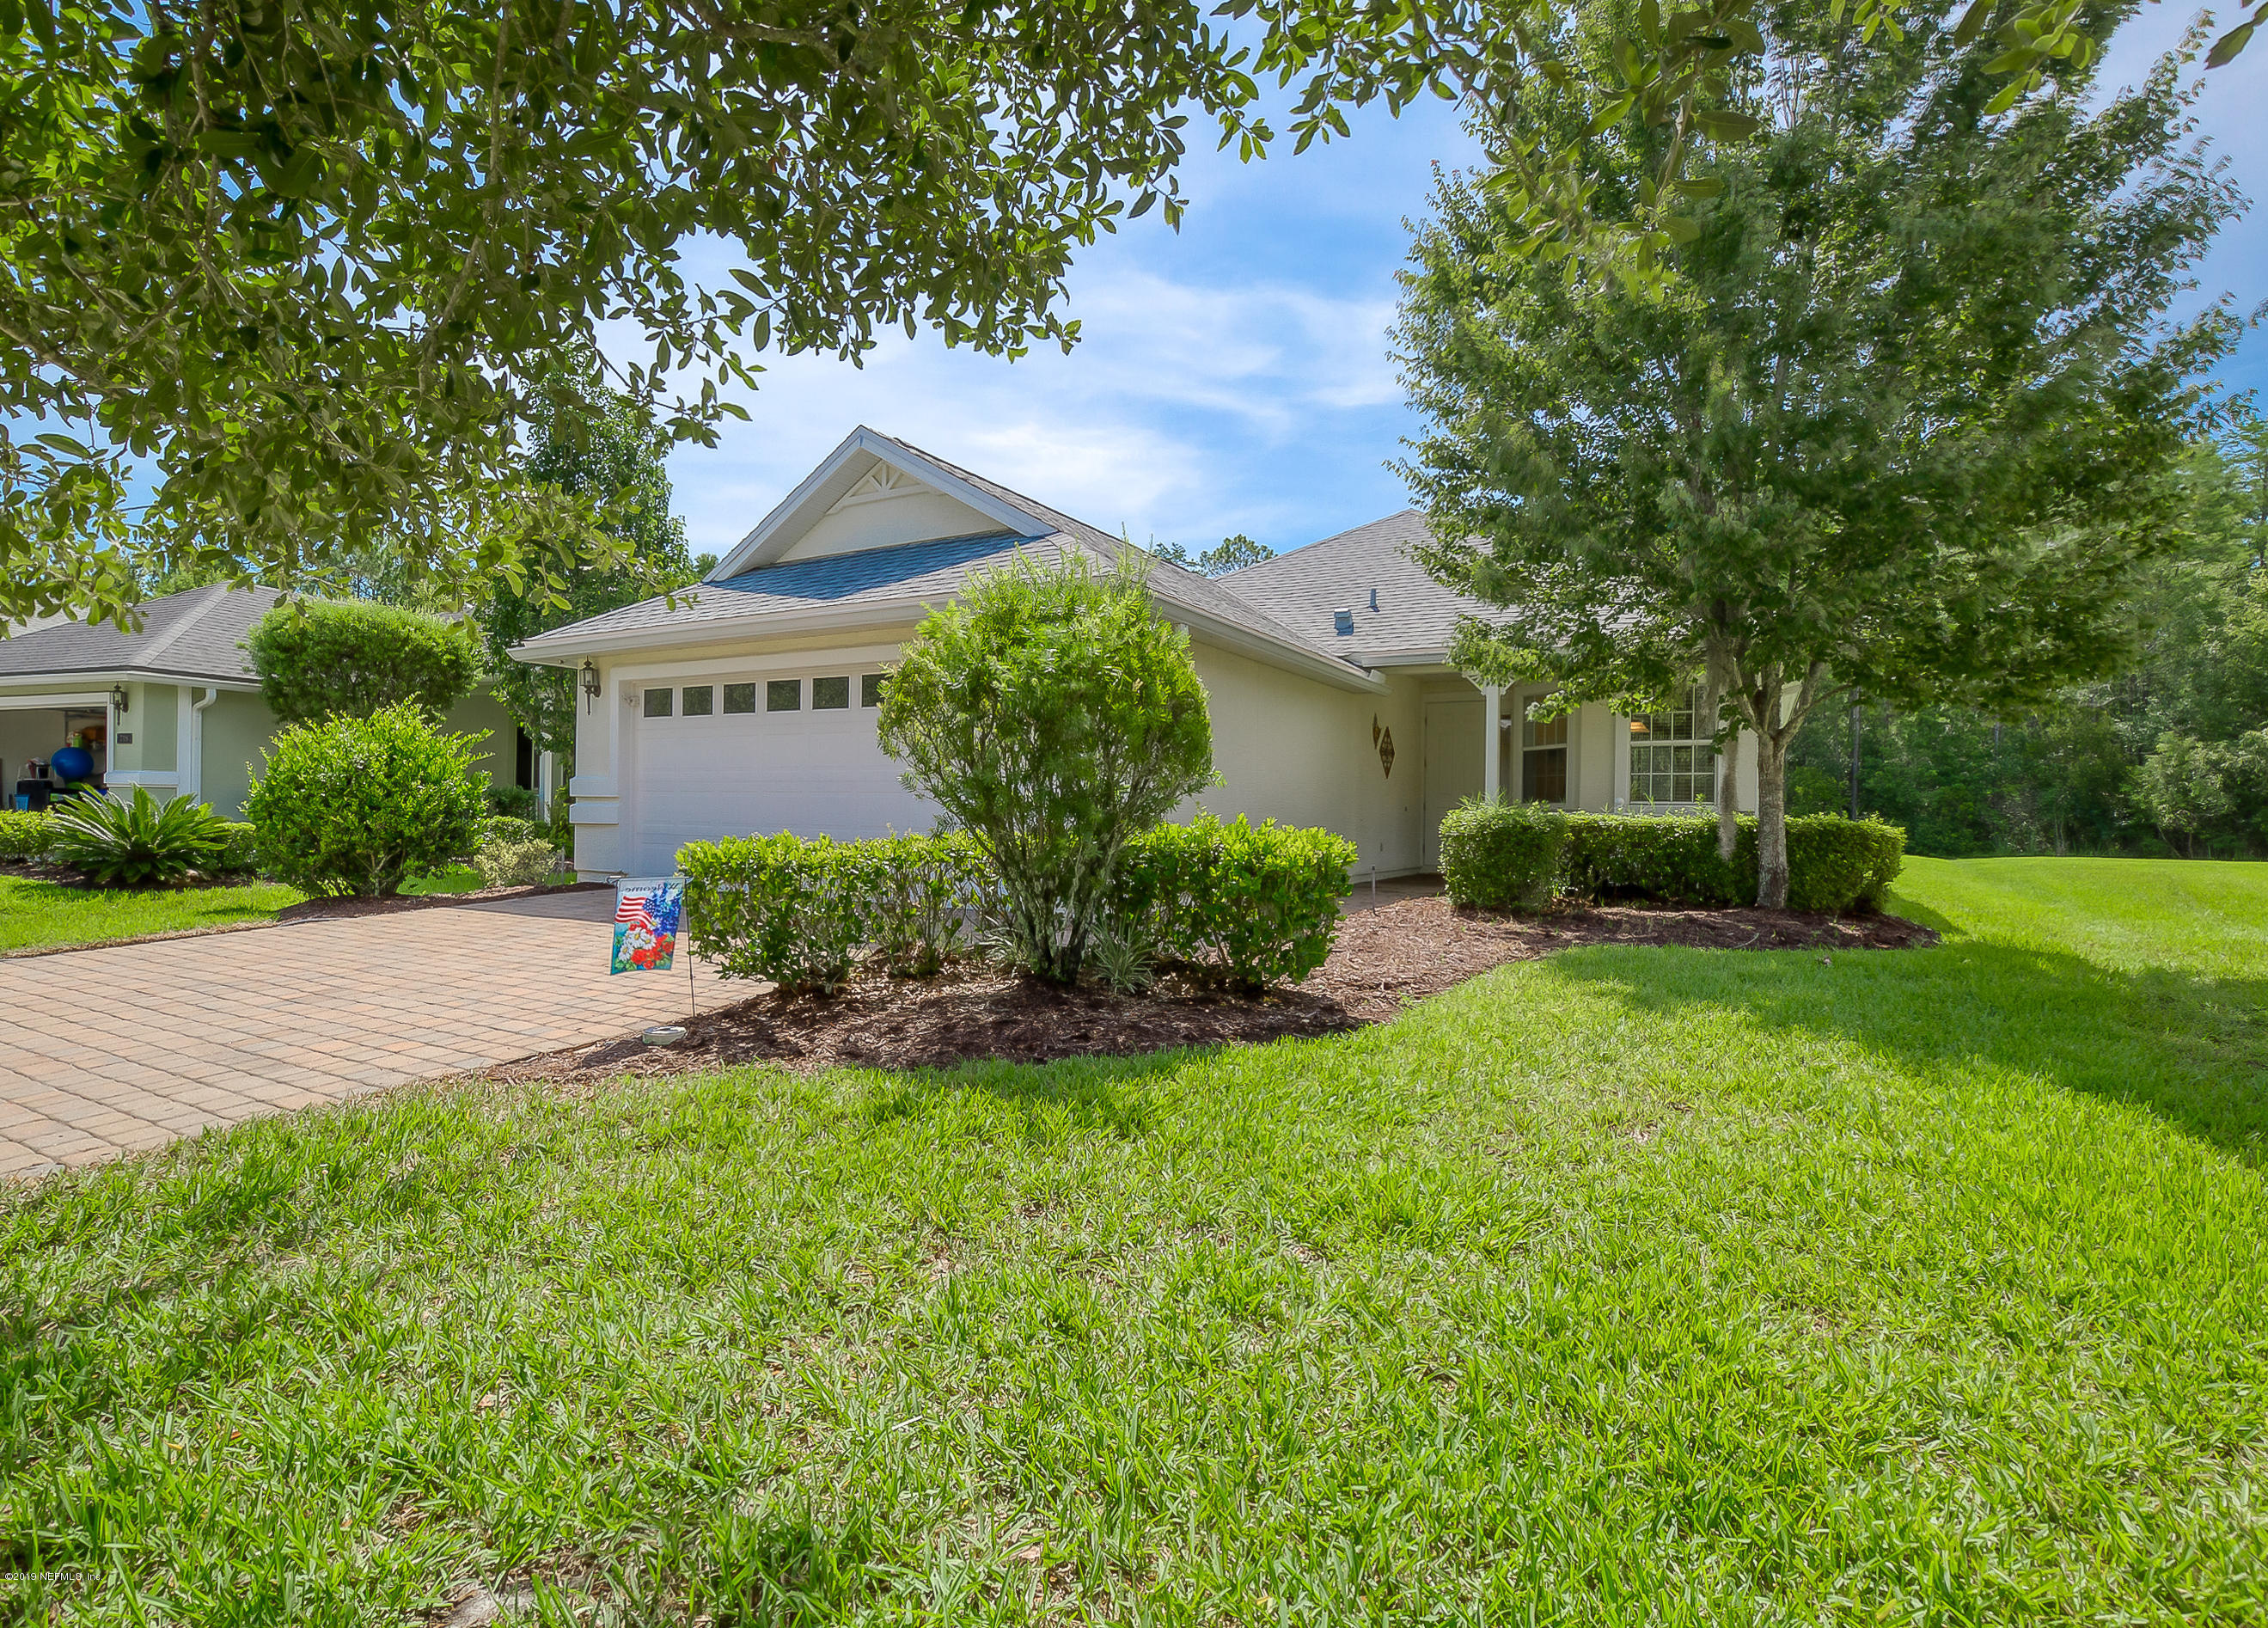 714 COPPERHEAD, ST AUGUSTINE, FLORIDA 32092, 3 Bedrooms Bedrooms, ,2 BathroomsBathrooms,Residential - single family,For sale,COPPERHEAD,1004753